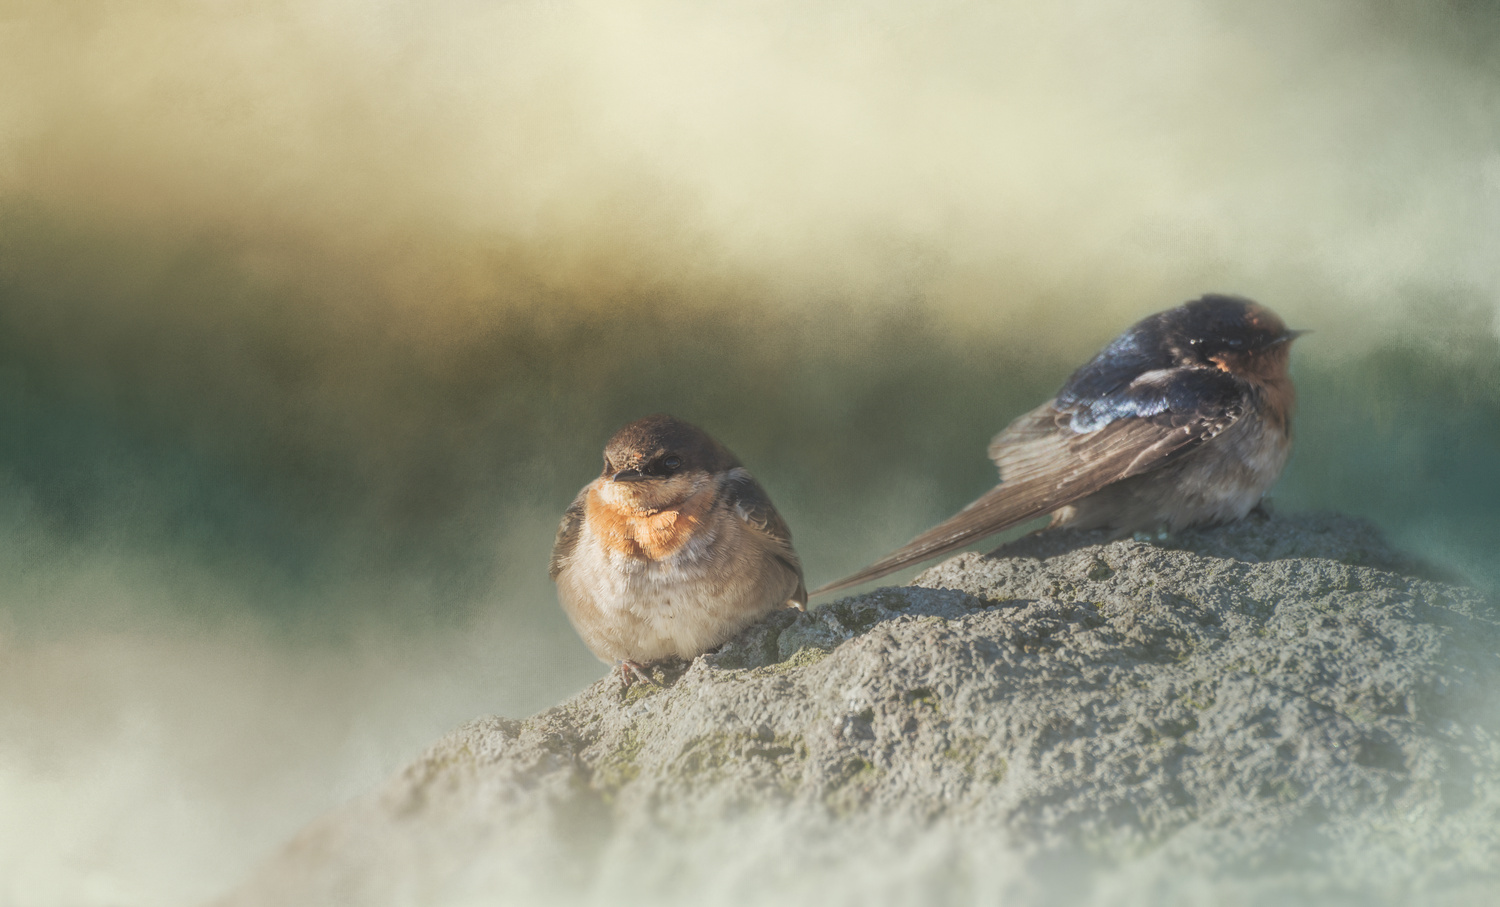 Two Swallows by marina de wit